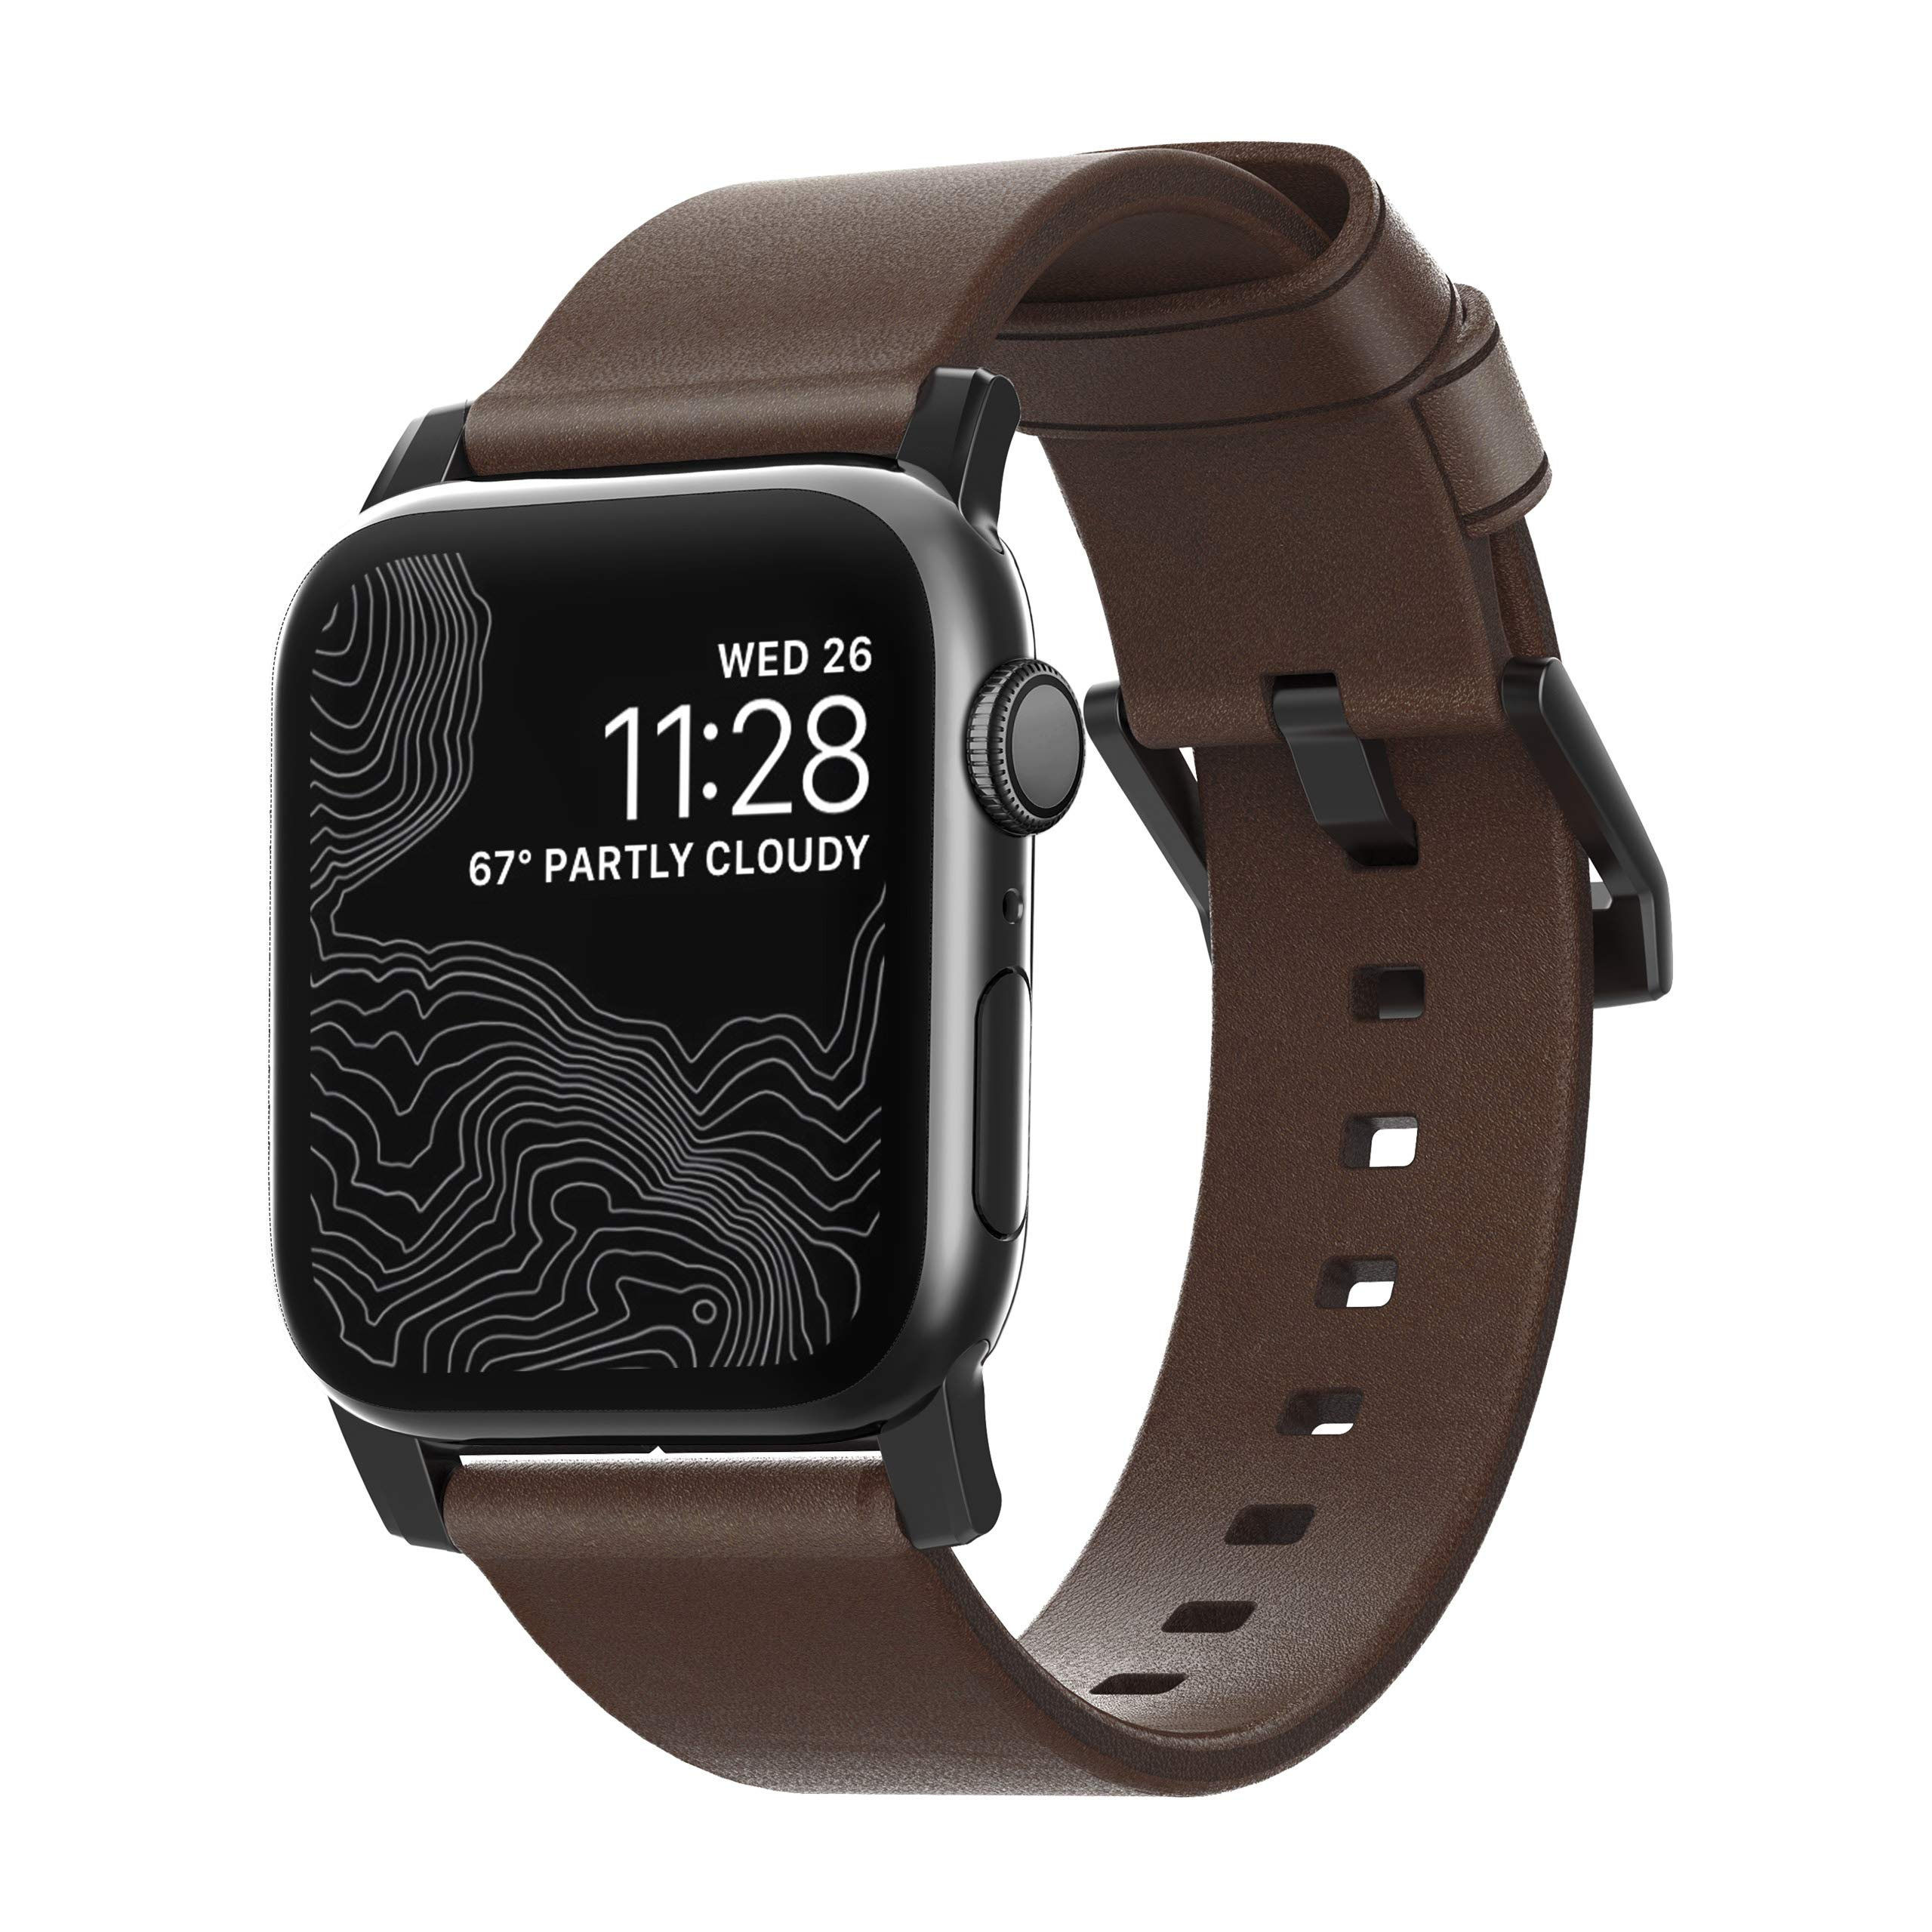 Nomad Modern Strap for Apple Watch 44mm/42mm | Rustic Brown Horween Leather | Black Hardware by Nomad